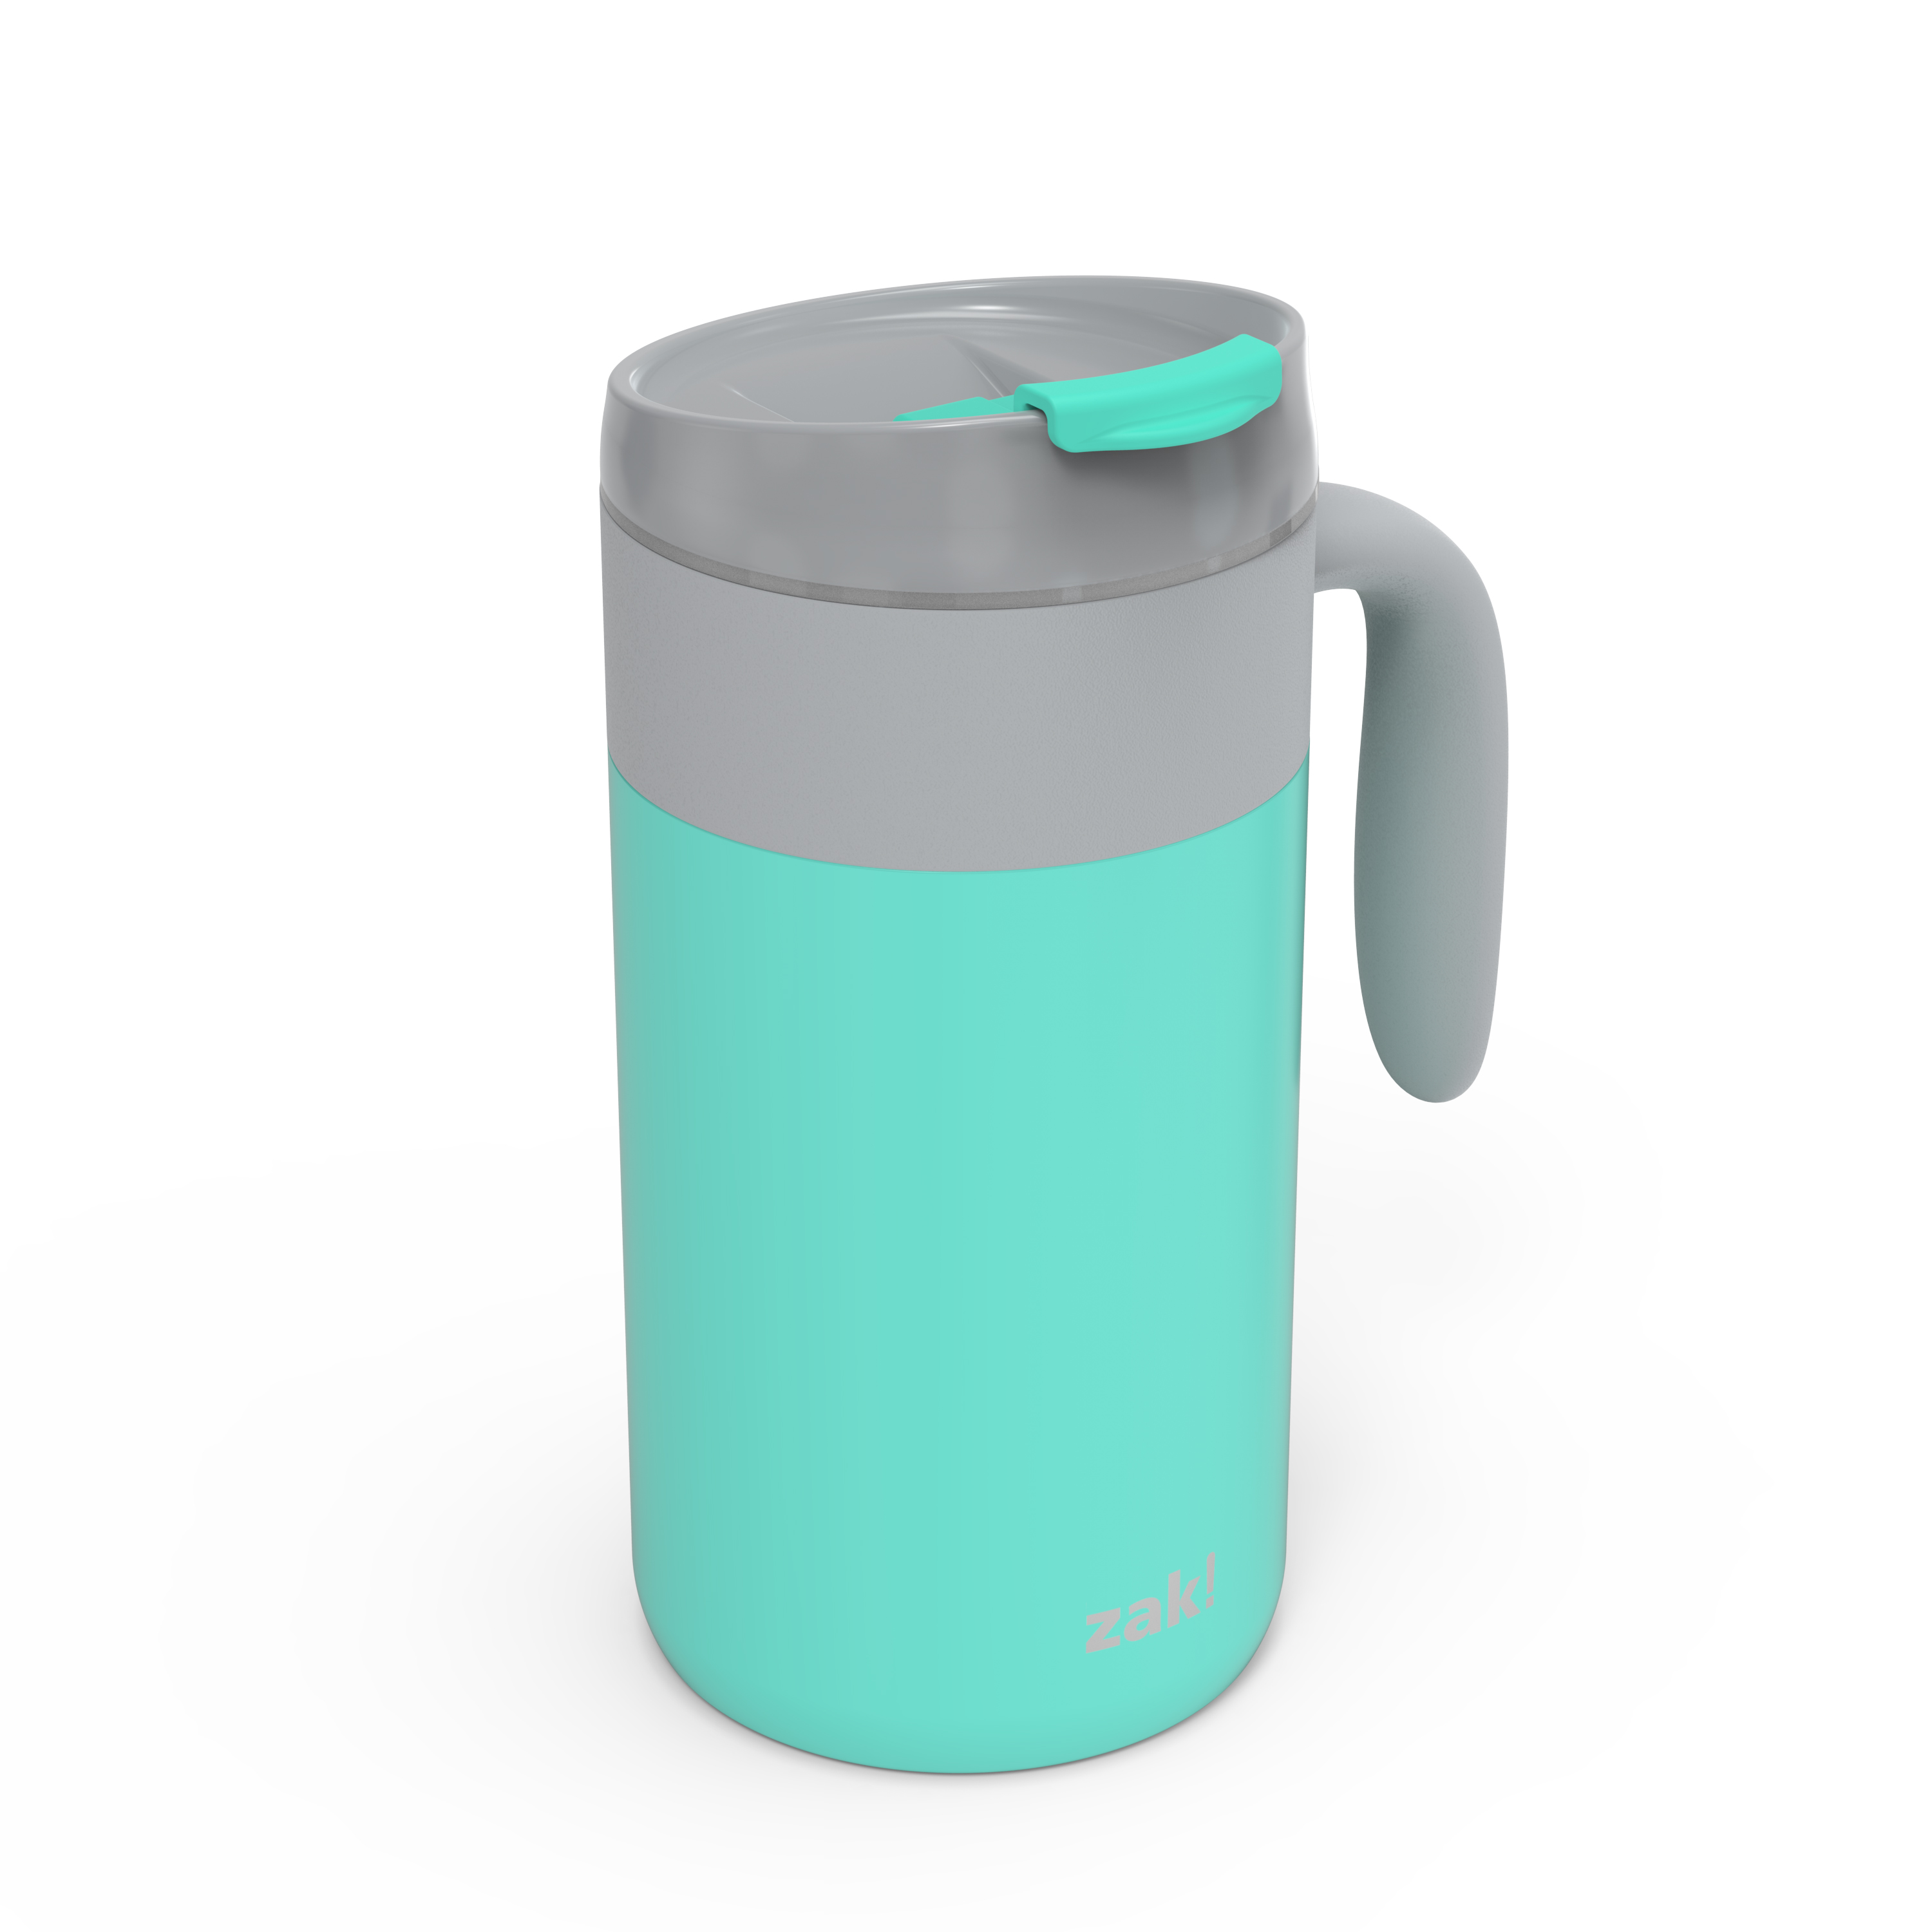 Aberdeen 20 ounce Vacuum Insulated Stainless Steel Tumbler, Green slideshow image 4